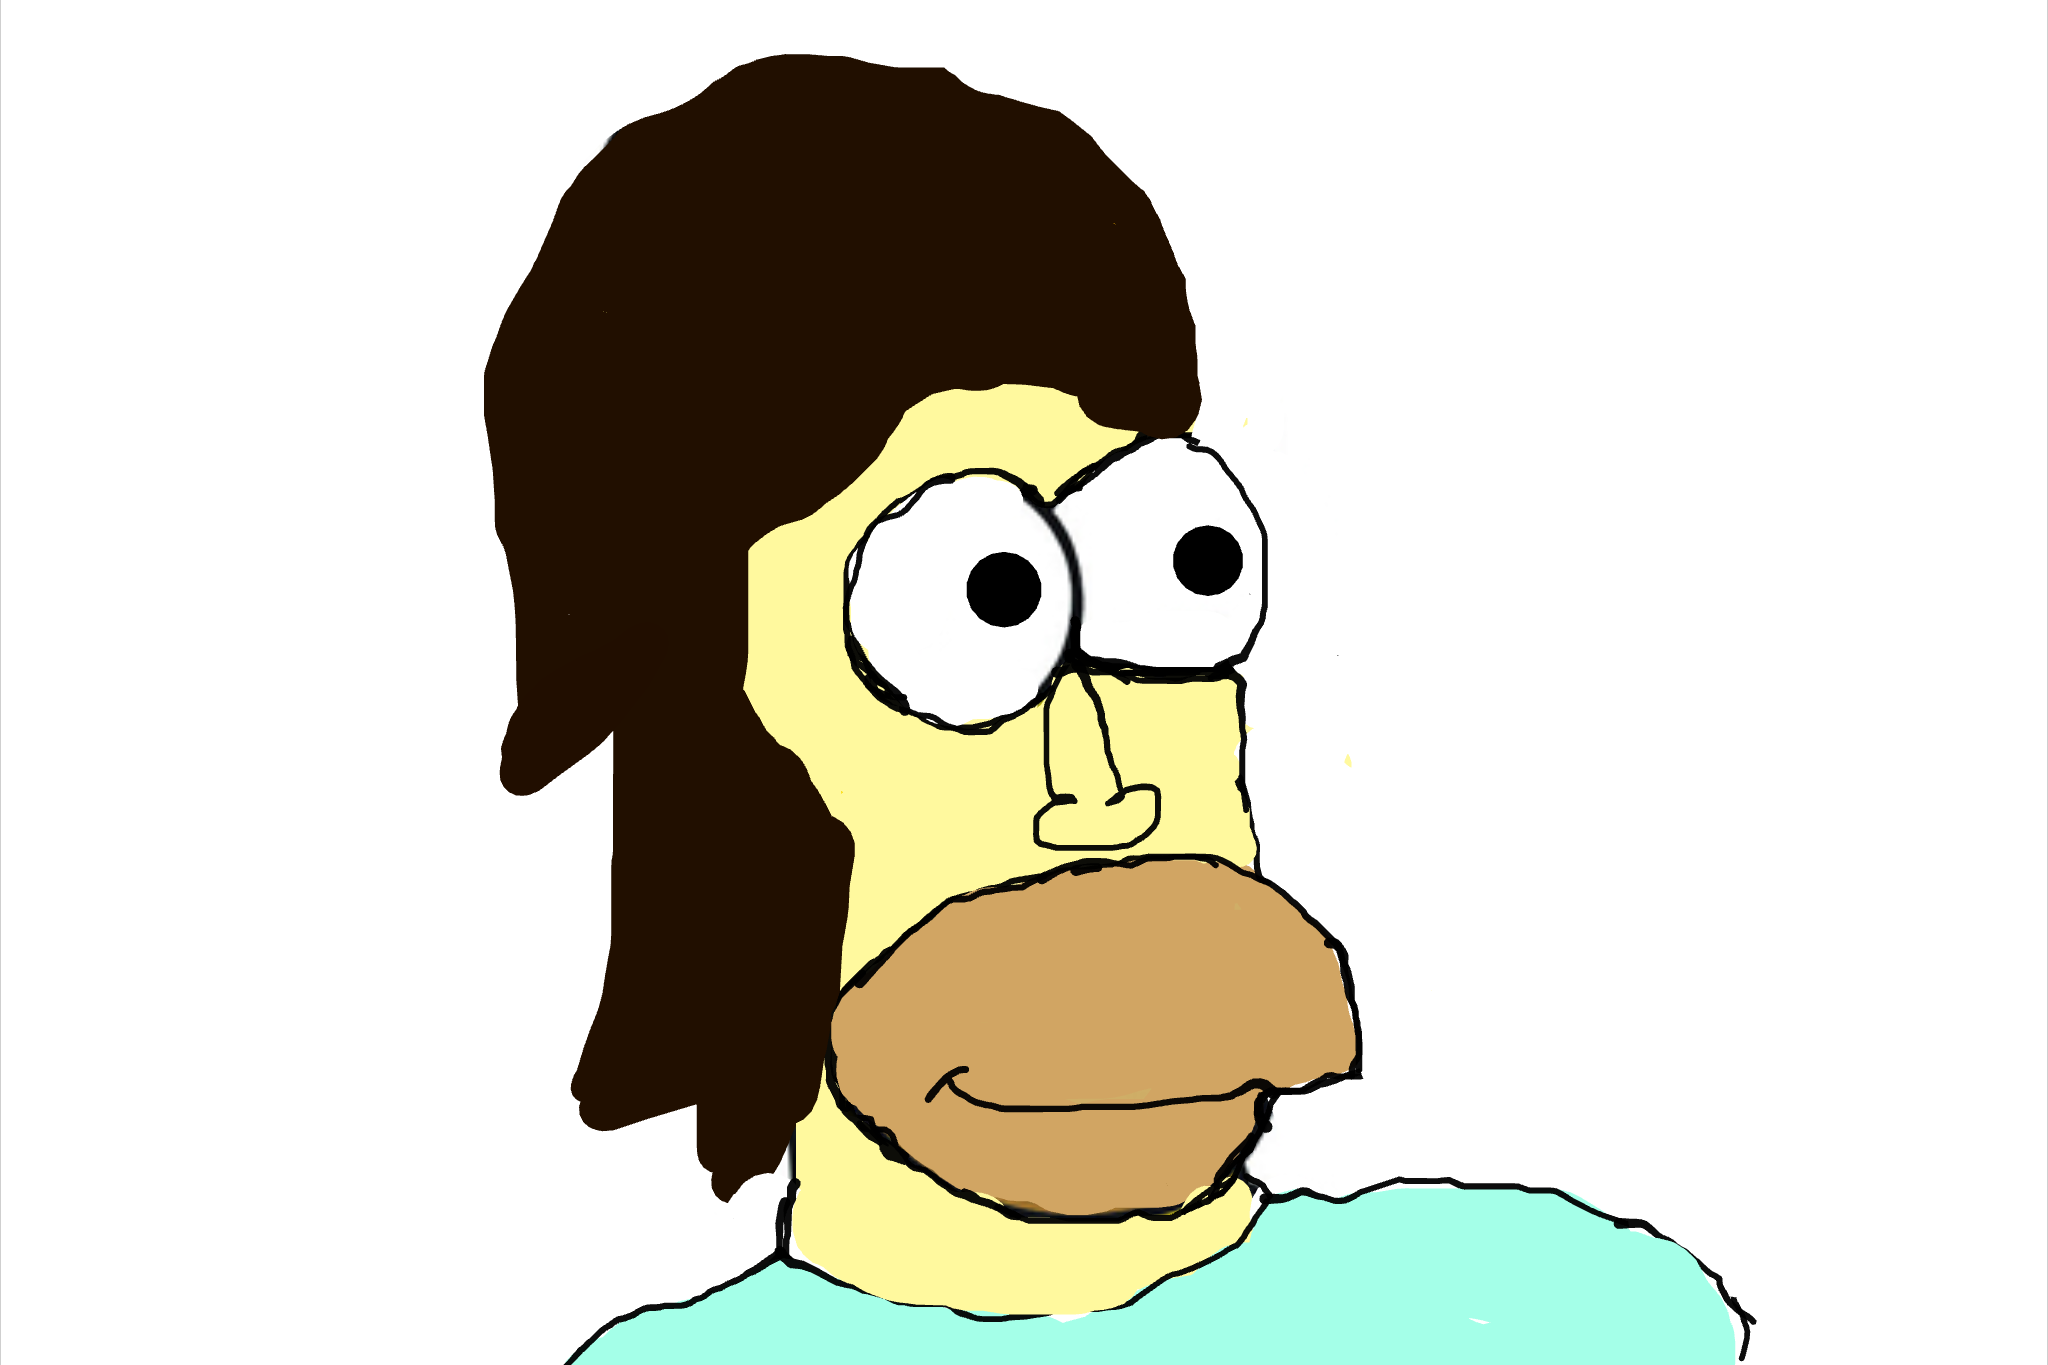 BetaOmega3/Look at my awful Homer Simpson re-do on Google Canvas